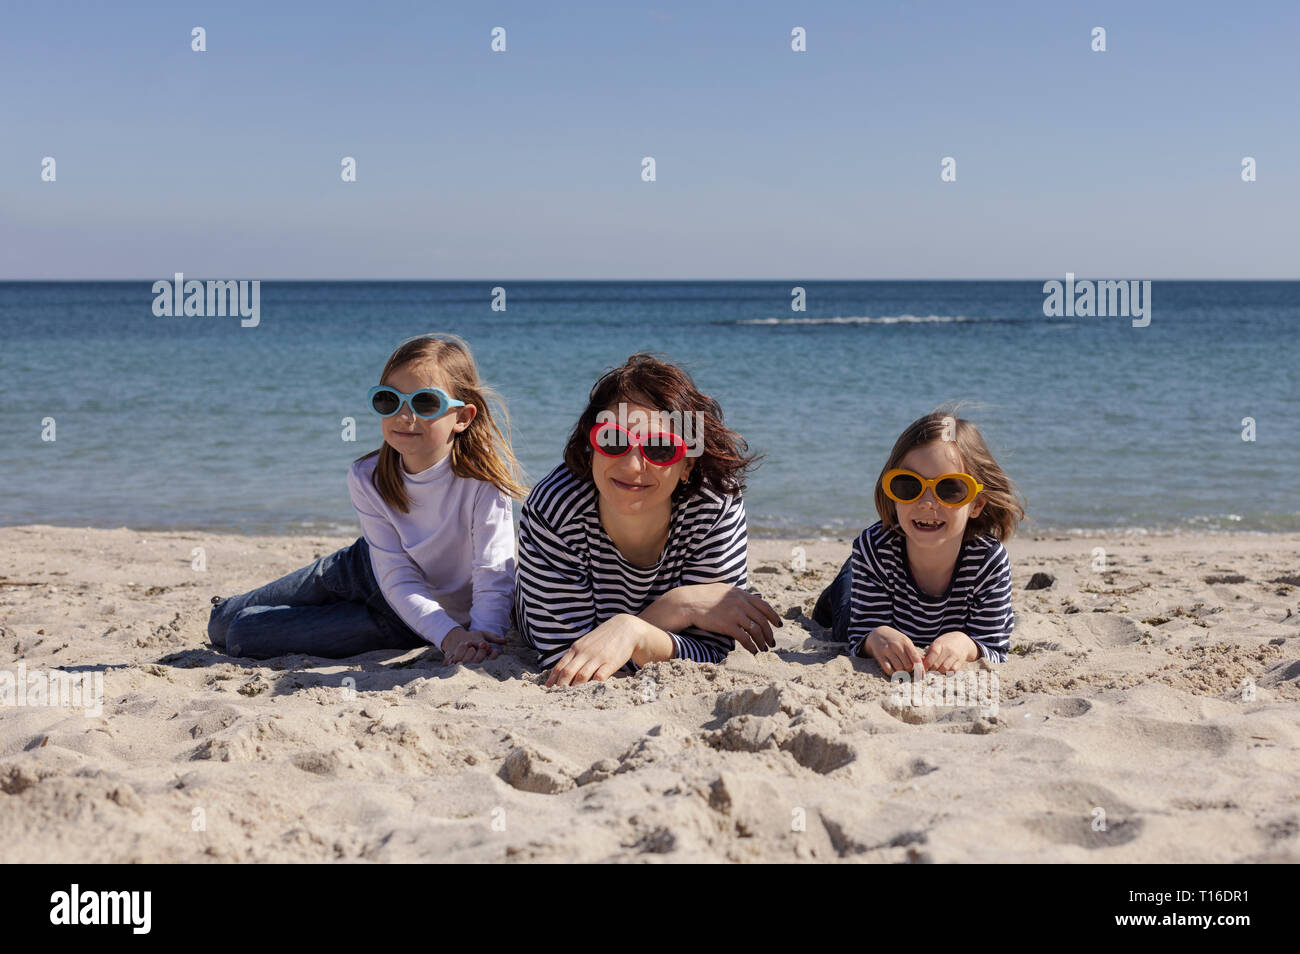 Walk moms with children on the beach. Sisters (8 and 7 years old) and younger brother (3 years old) are playing at sea. Selective focus. Stock Photo